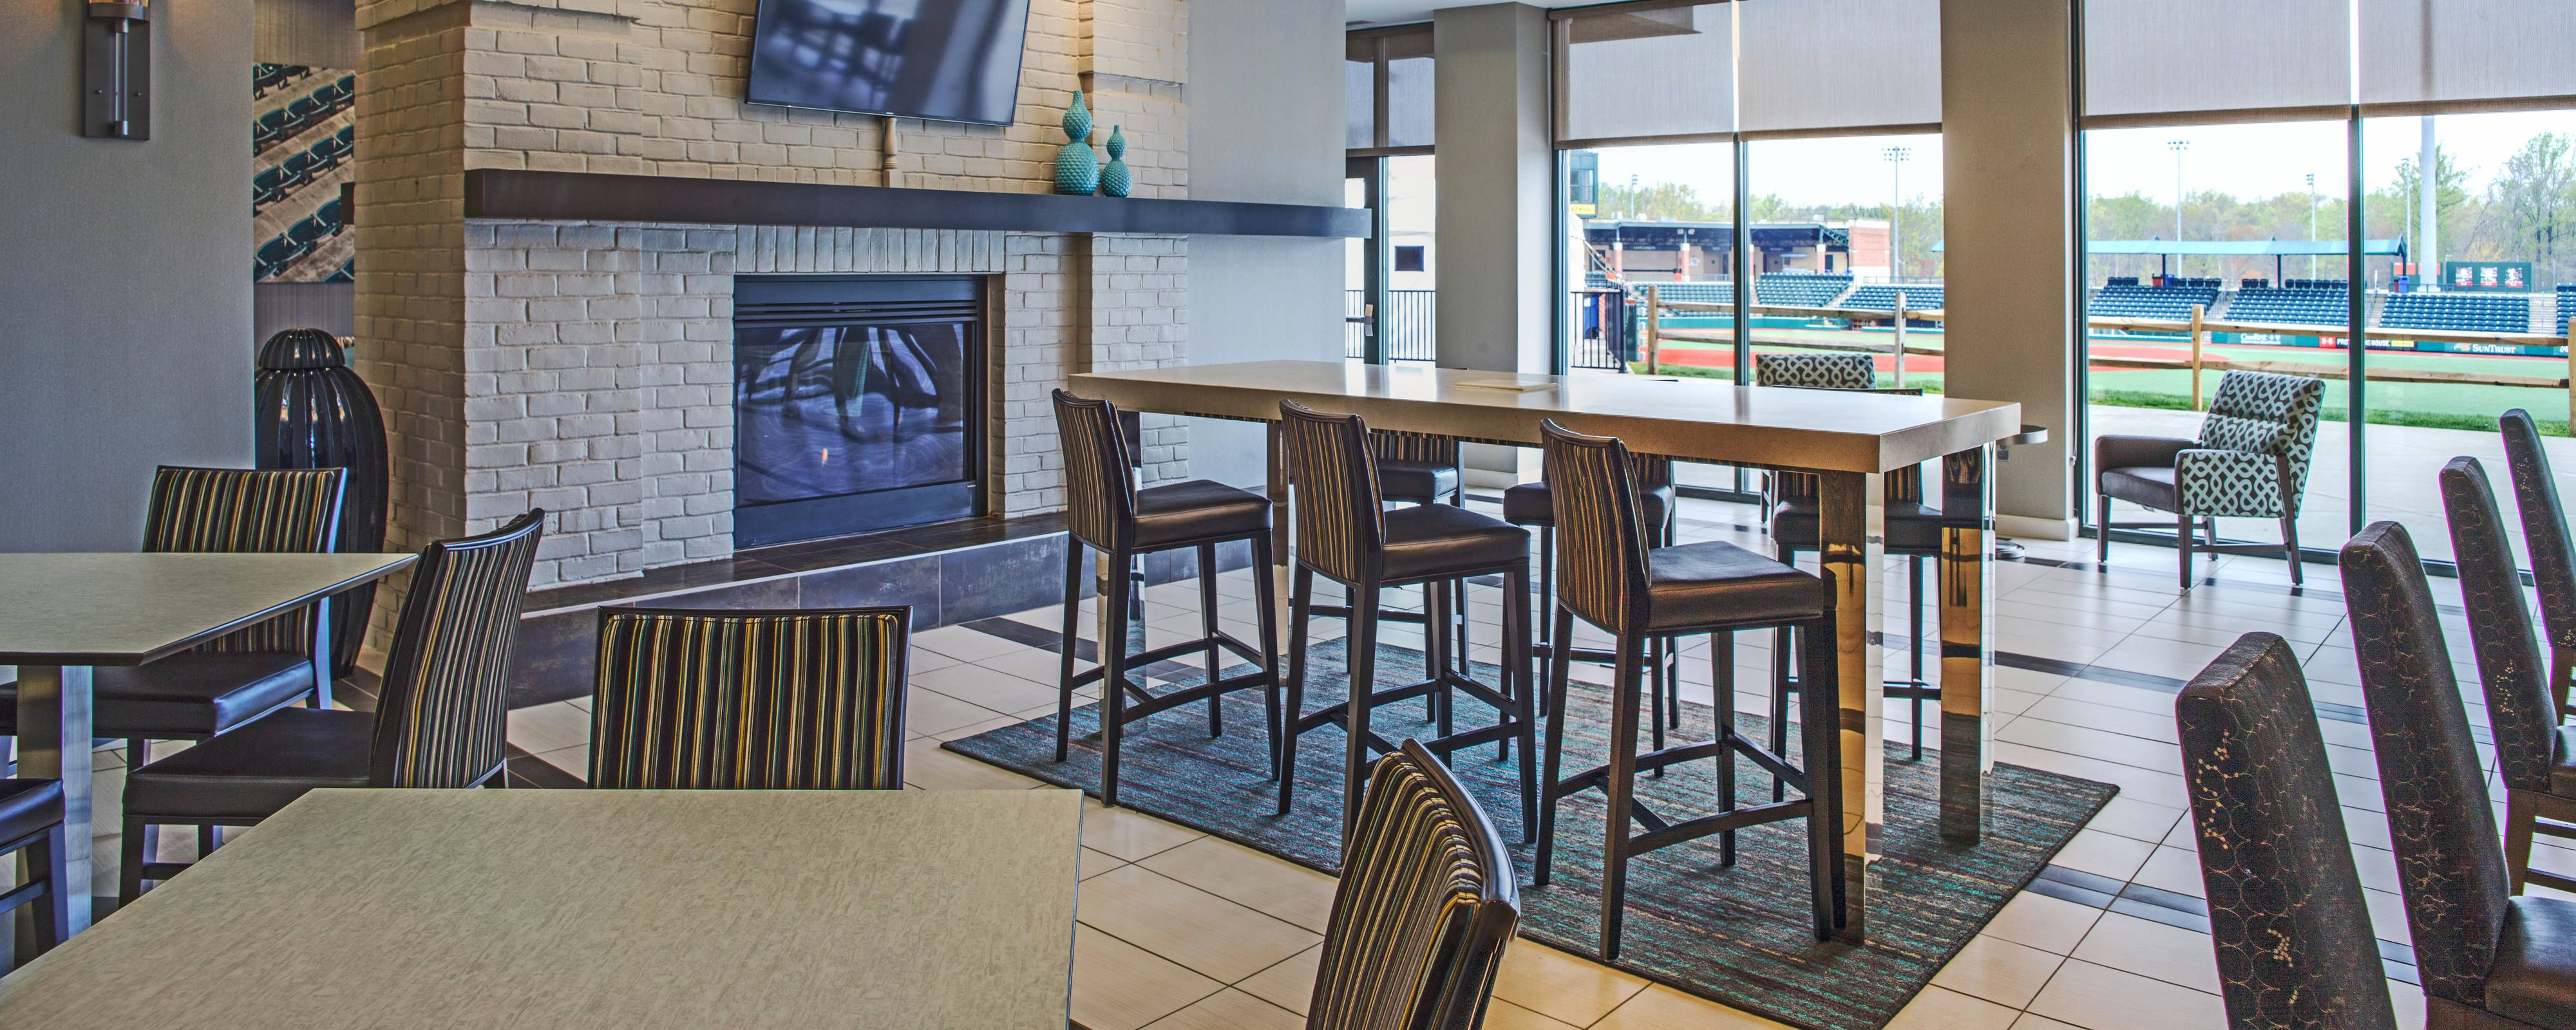 Reserve an extended stay at our hotel near Ripken Stadium